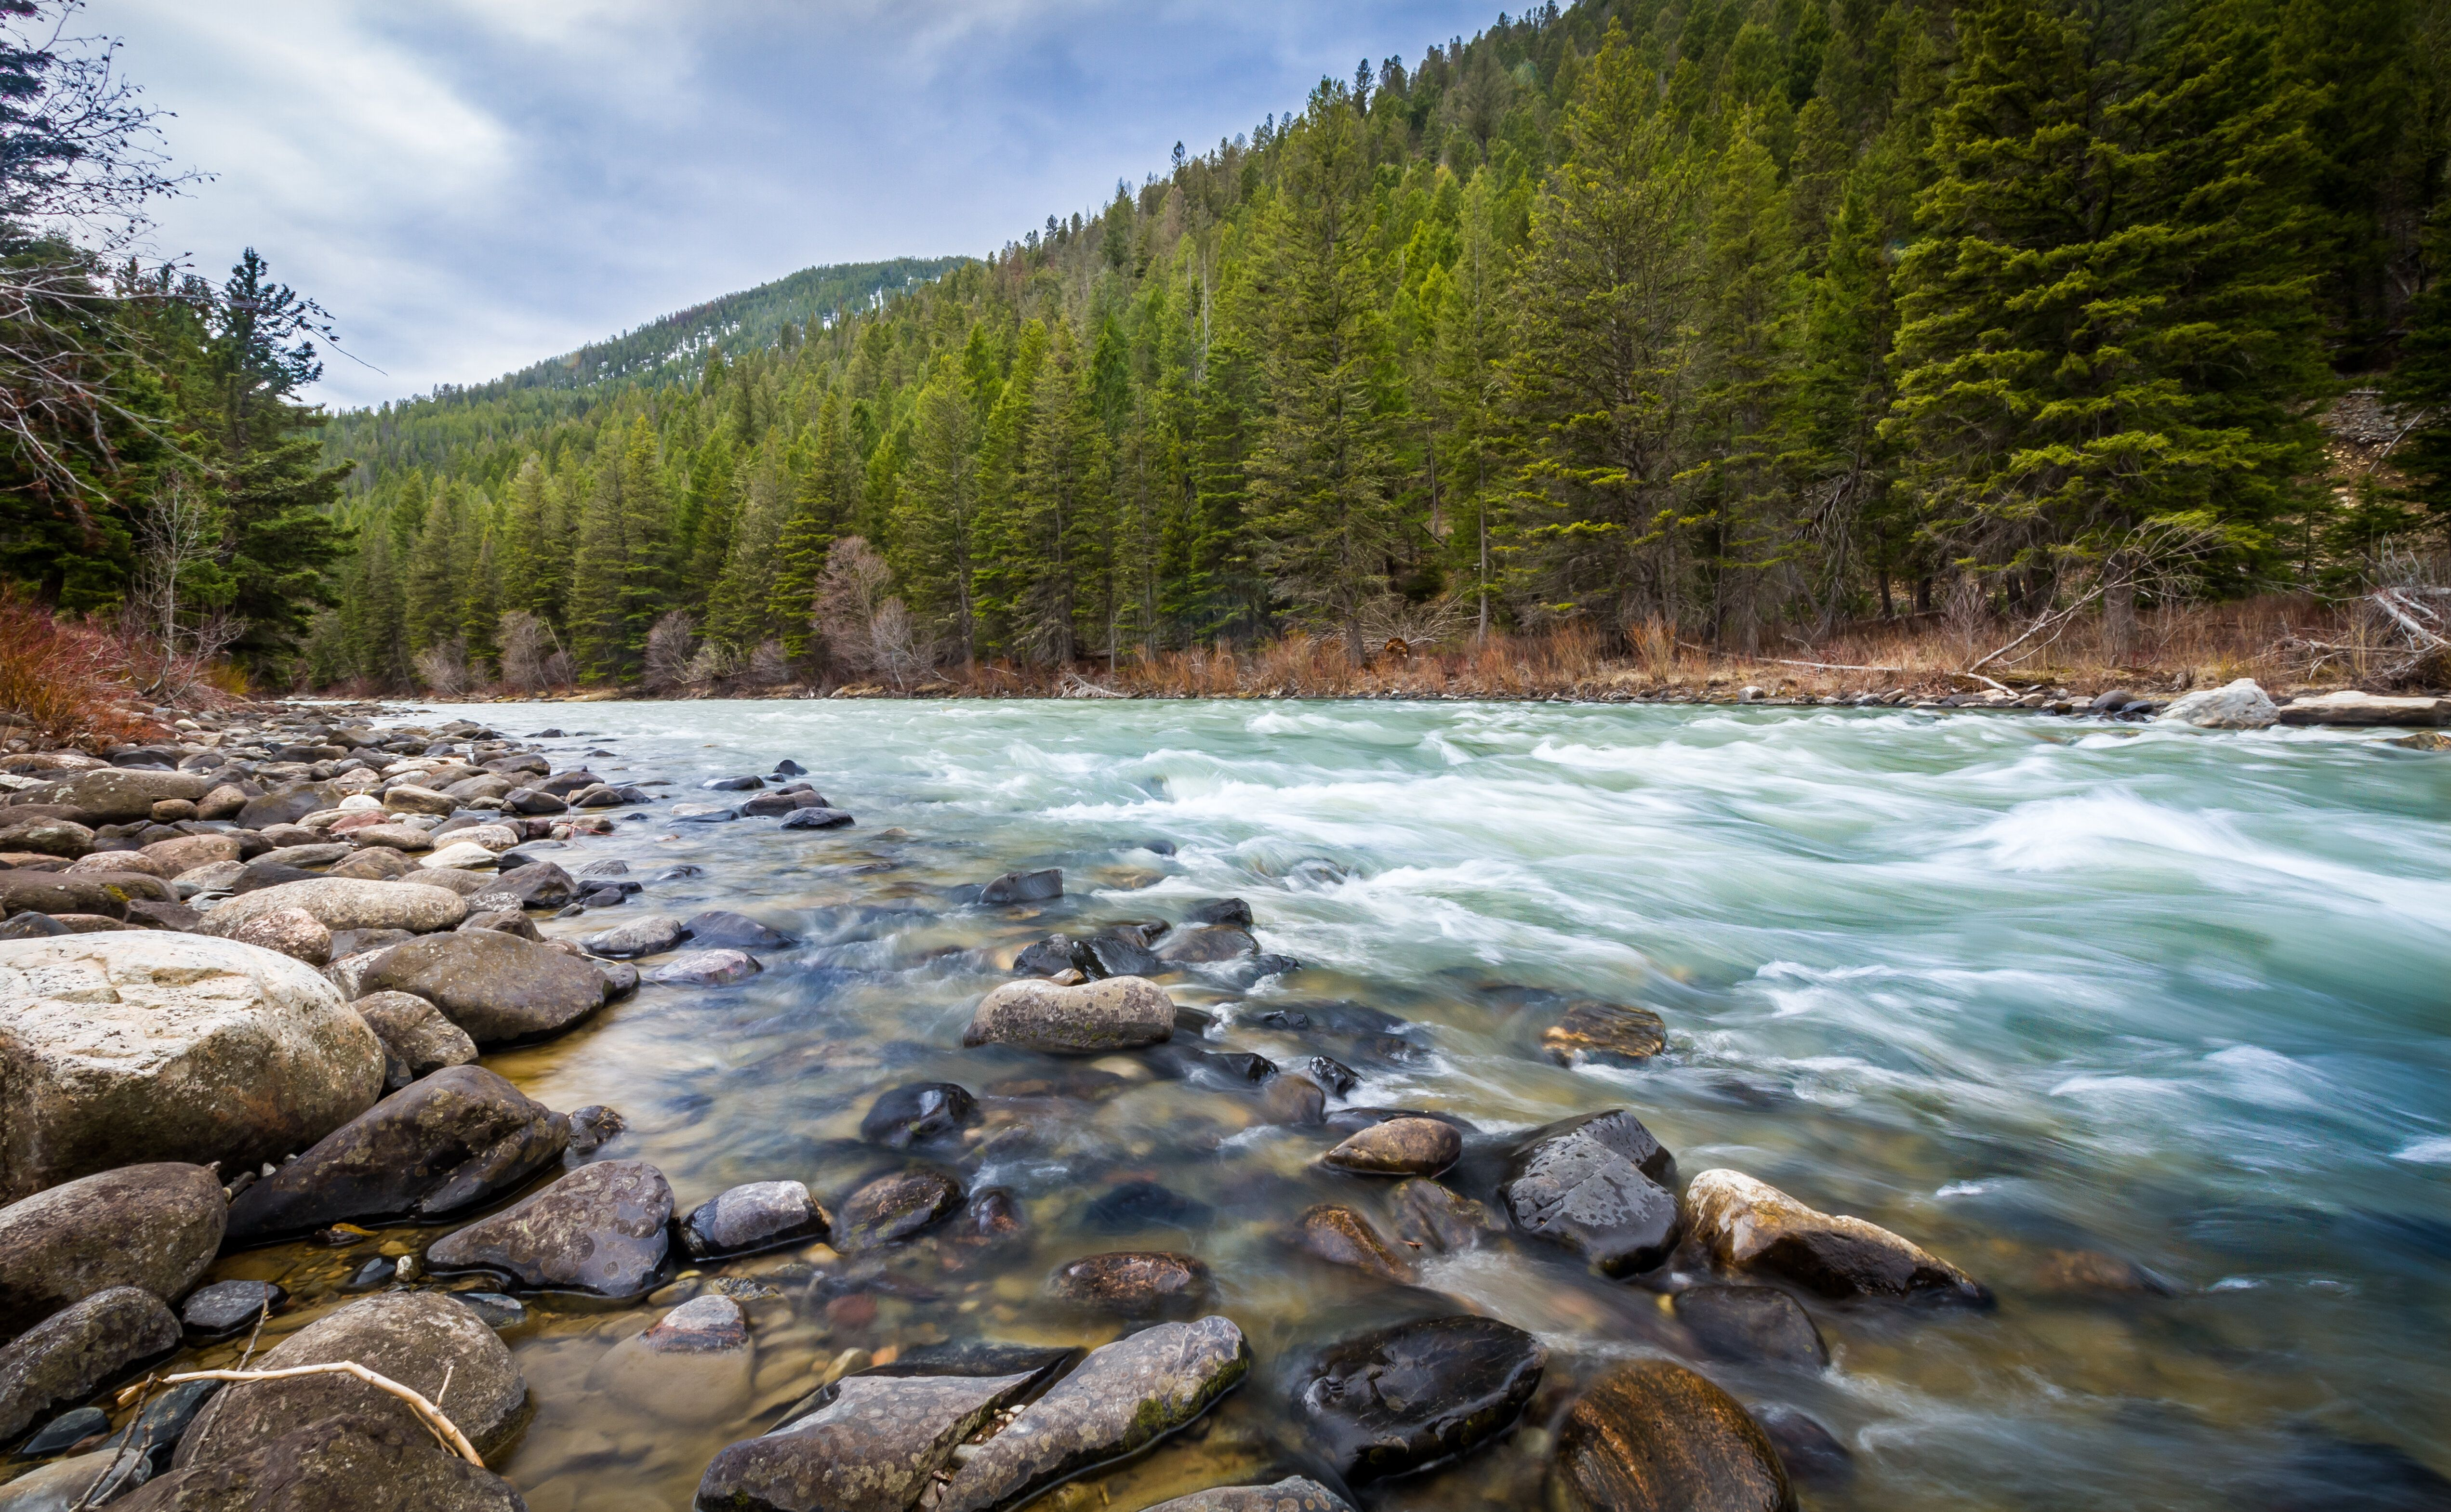 The 120-mile-long Gallatin River is one of three rivers that converge near Three Forks, Montana, to form the Missouri River.